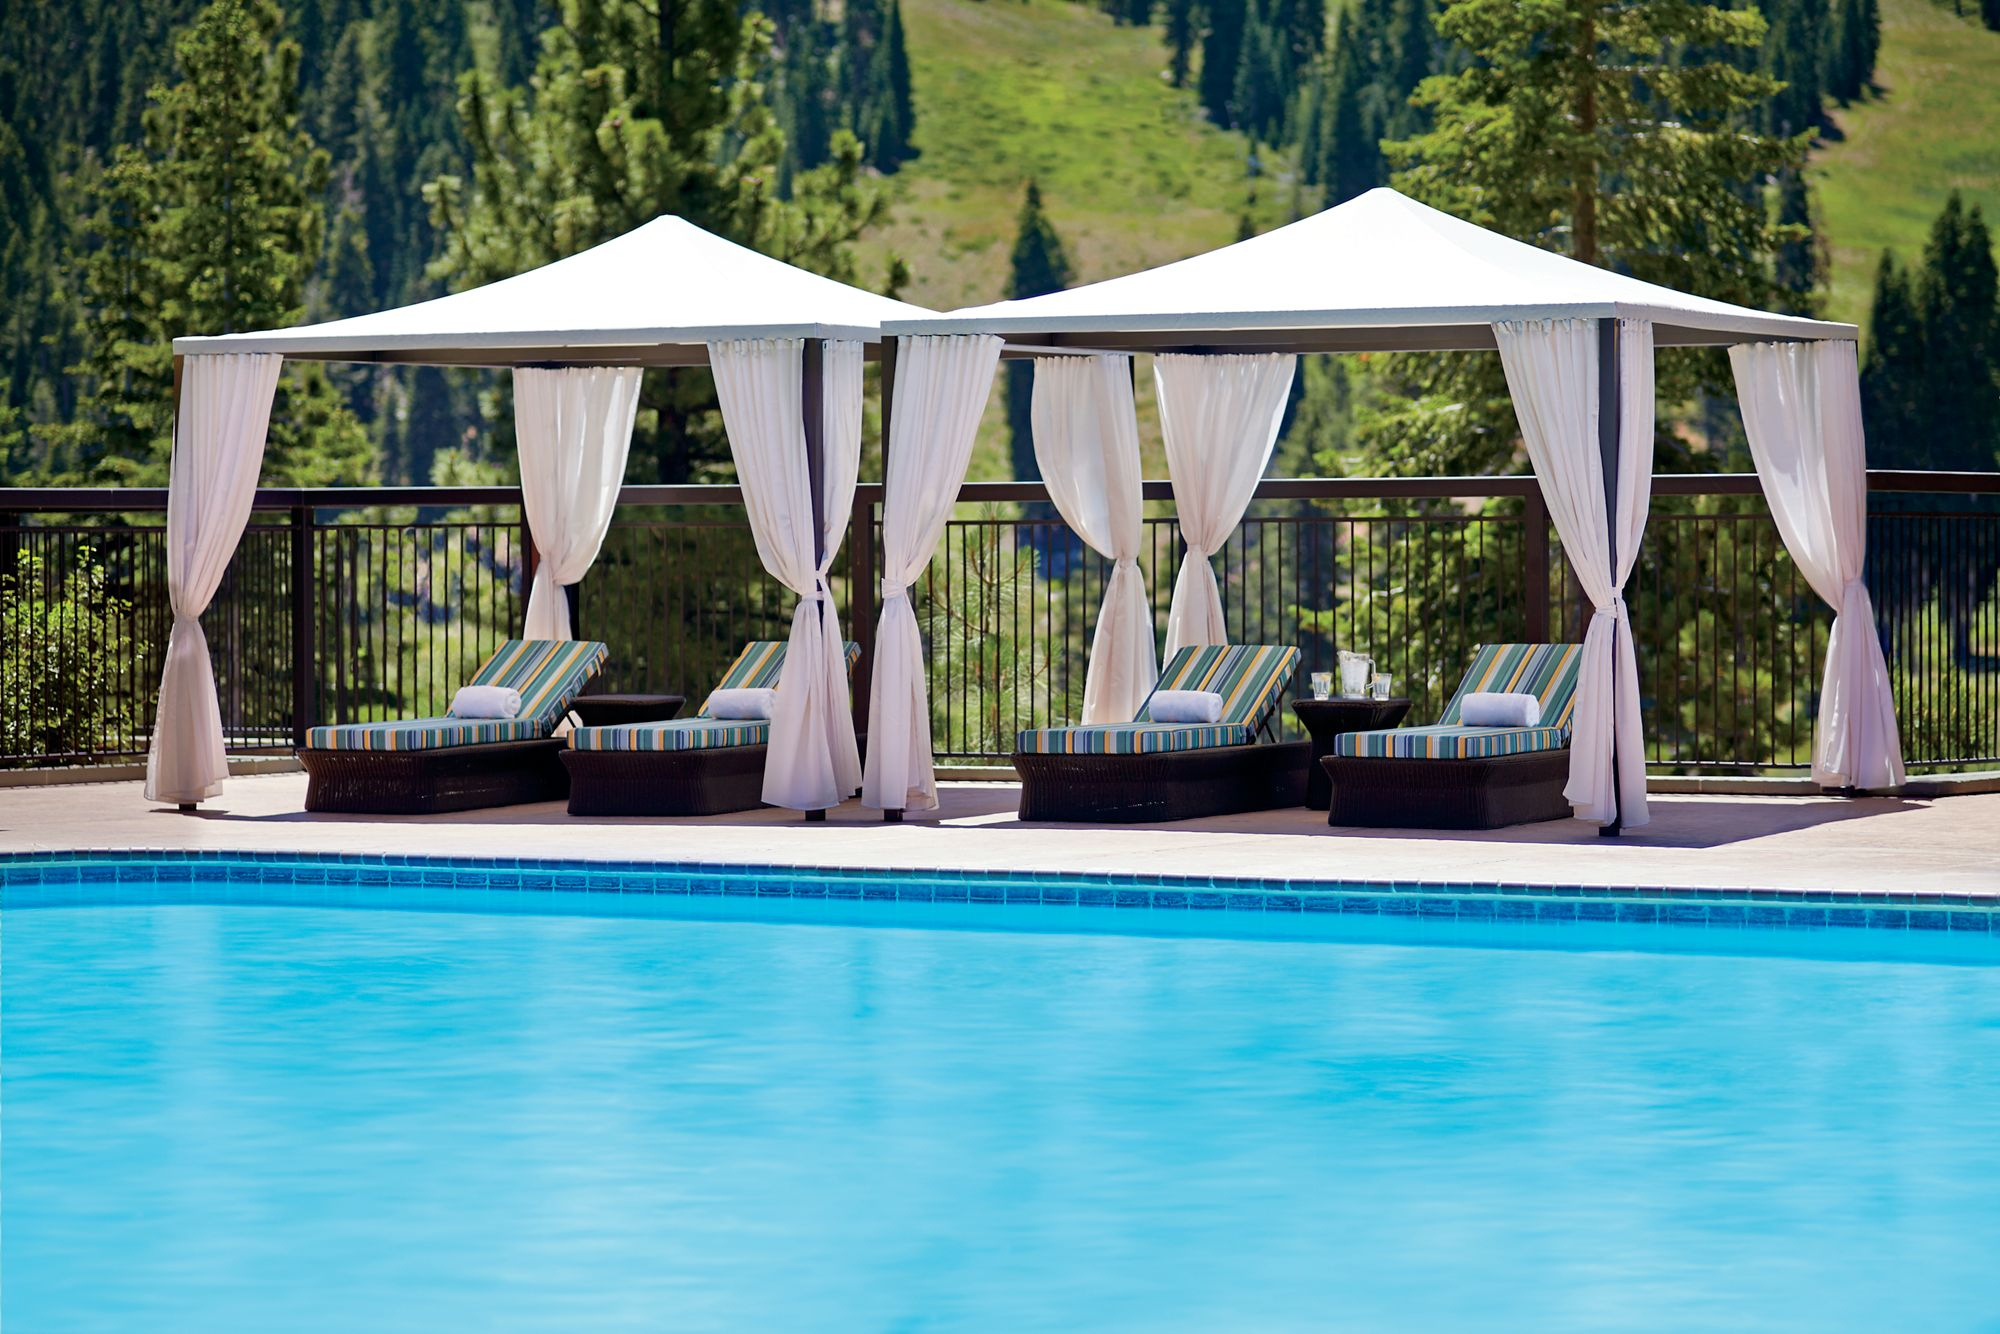 Strange Poolside Cabanas The Ritz Carlton Lake Tahoe Gmtry Best Dining Table And Chair Ideas Images Gmtryco